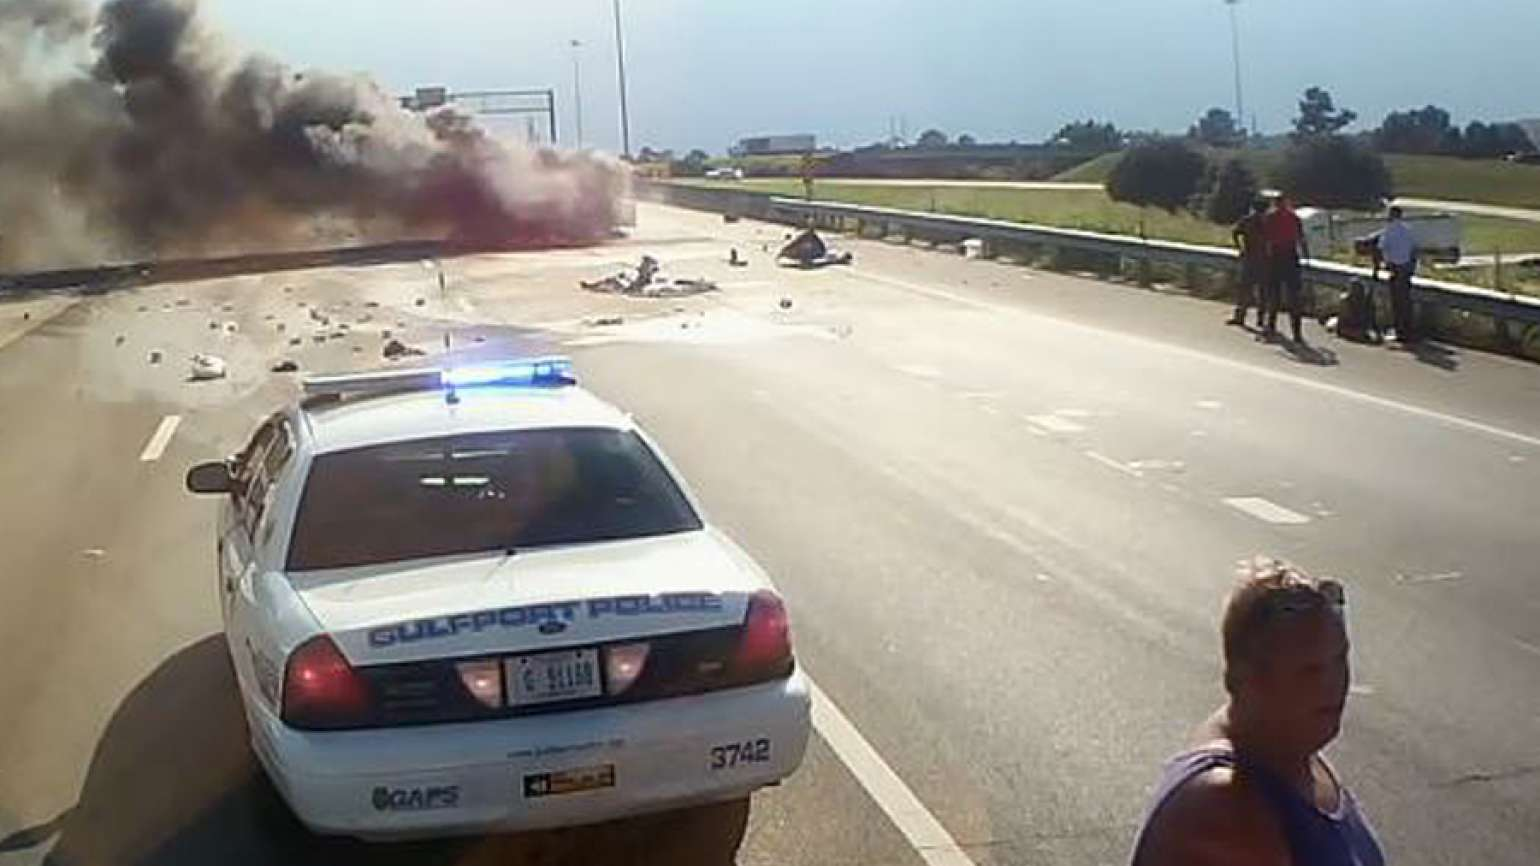 David Fredericksen rushes to help a woman and a child trapped in a burning car.